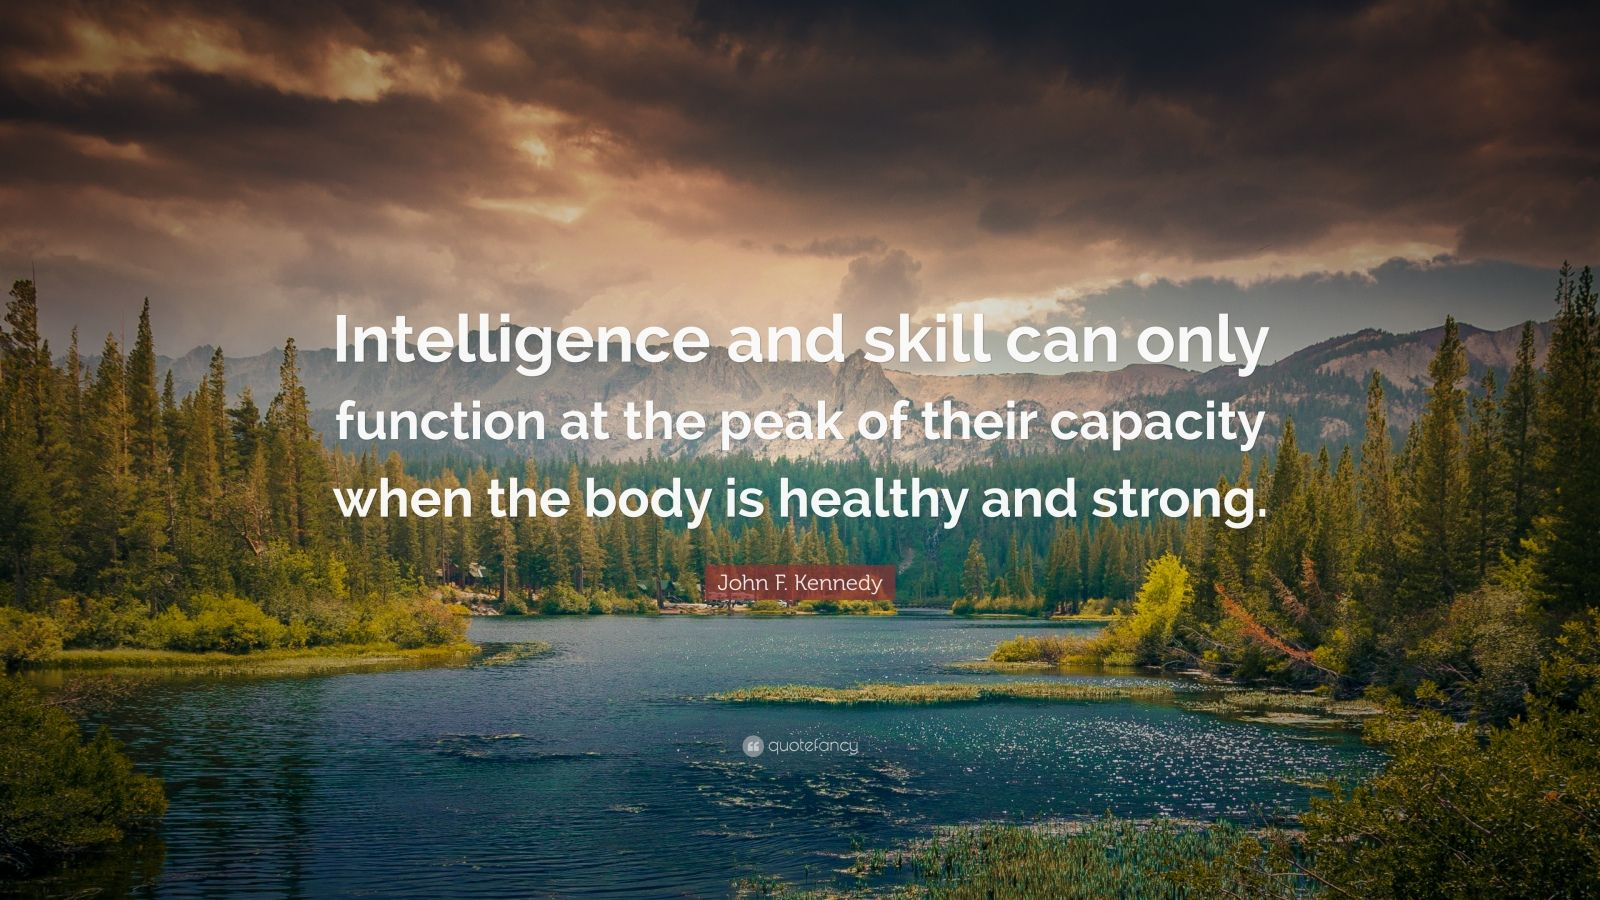 """John F. Kennedy Quote: """"Intelligence and skill can only function at the peak of their capacity when the body is healthy and strong."""""""